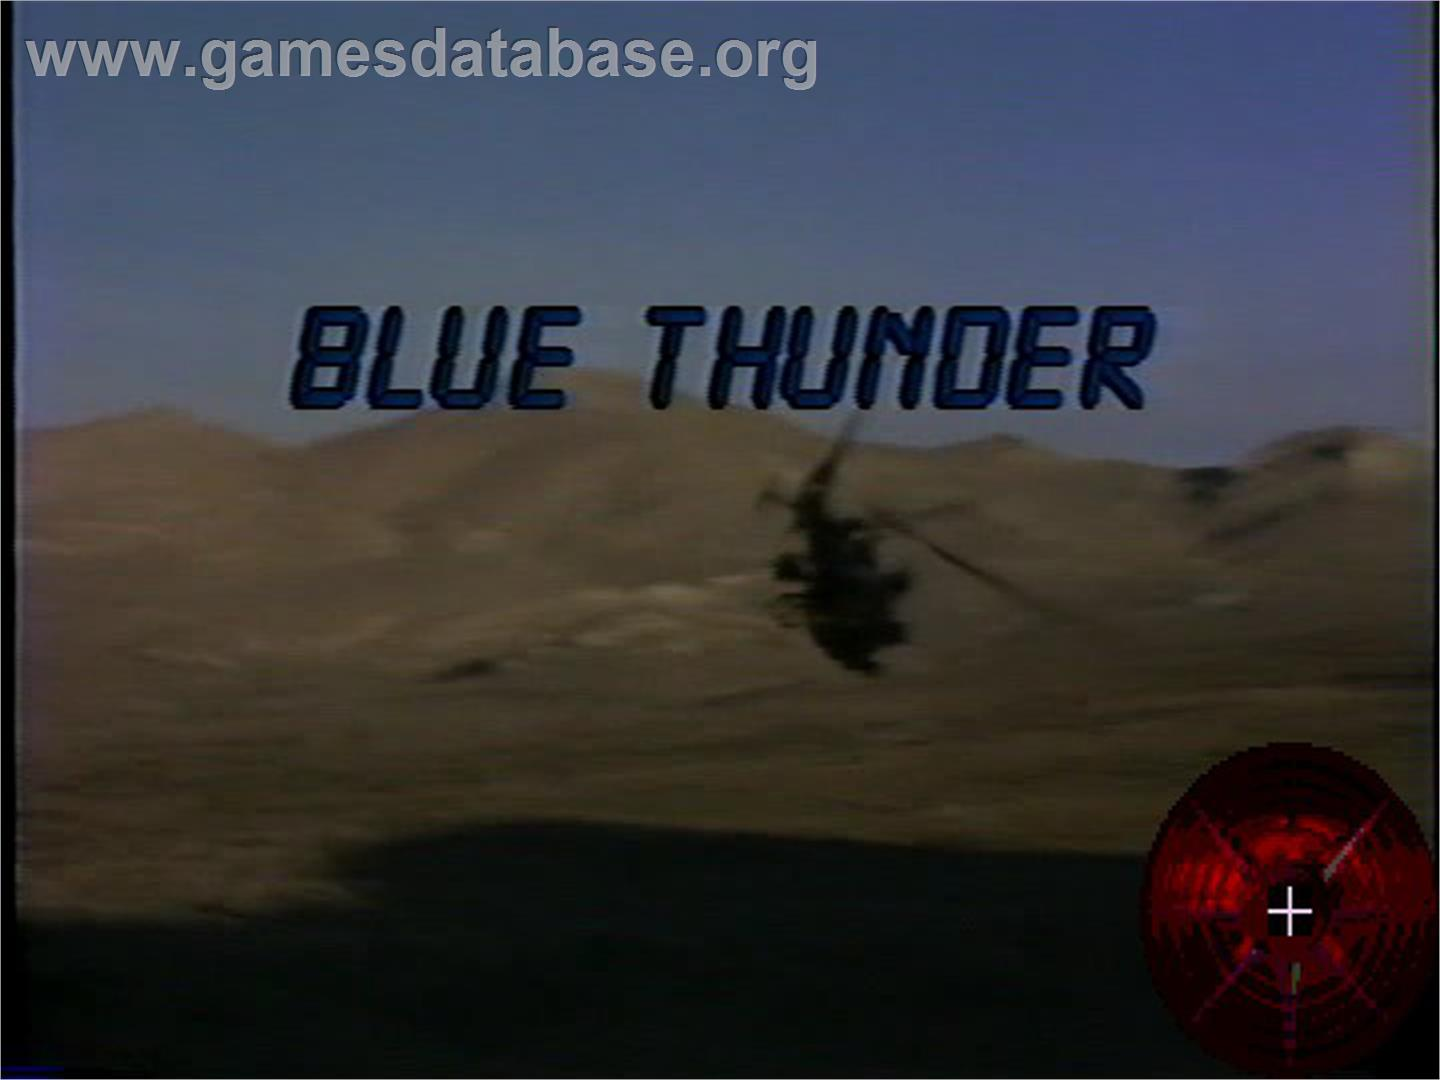 Blue Thunder - WoW Action Max - Artwork - Title Screen